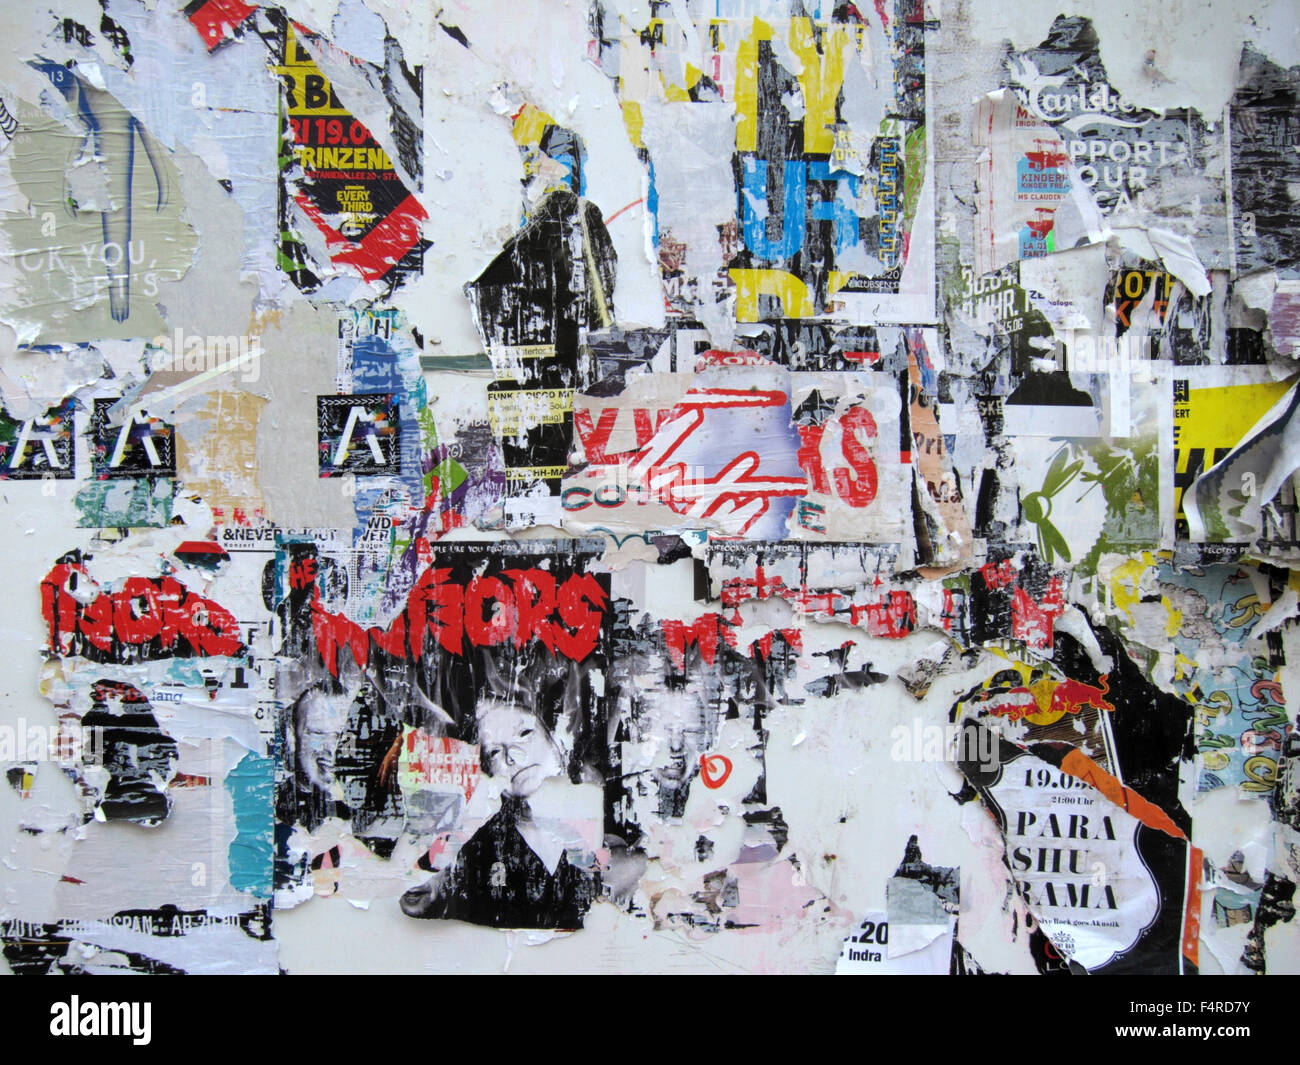 Poster, posters, advertising, stick, ripped, Germany, Europe - Stock Image